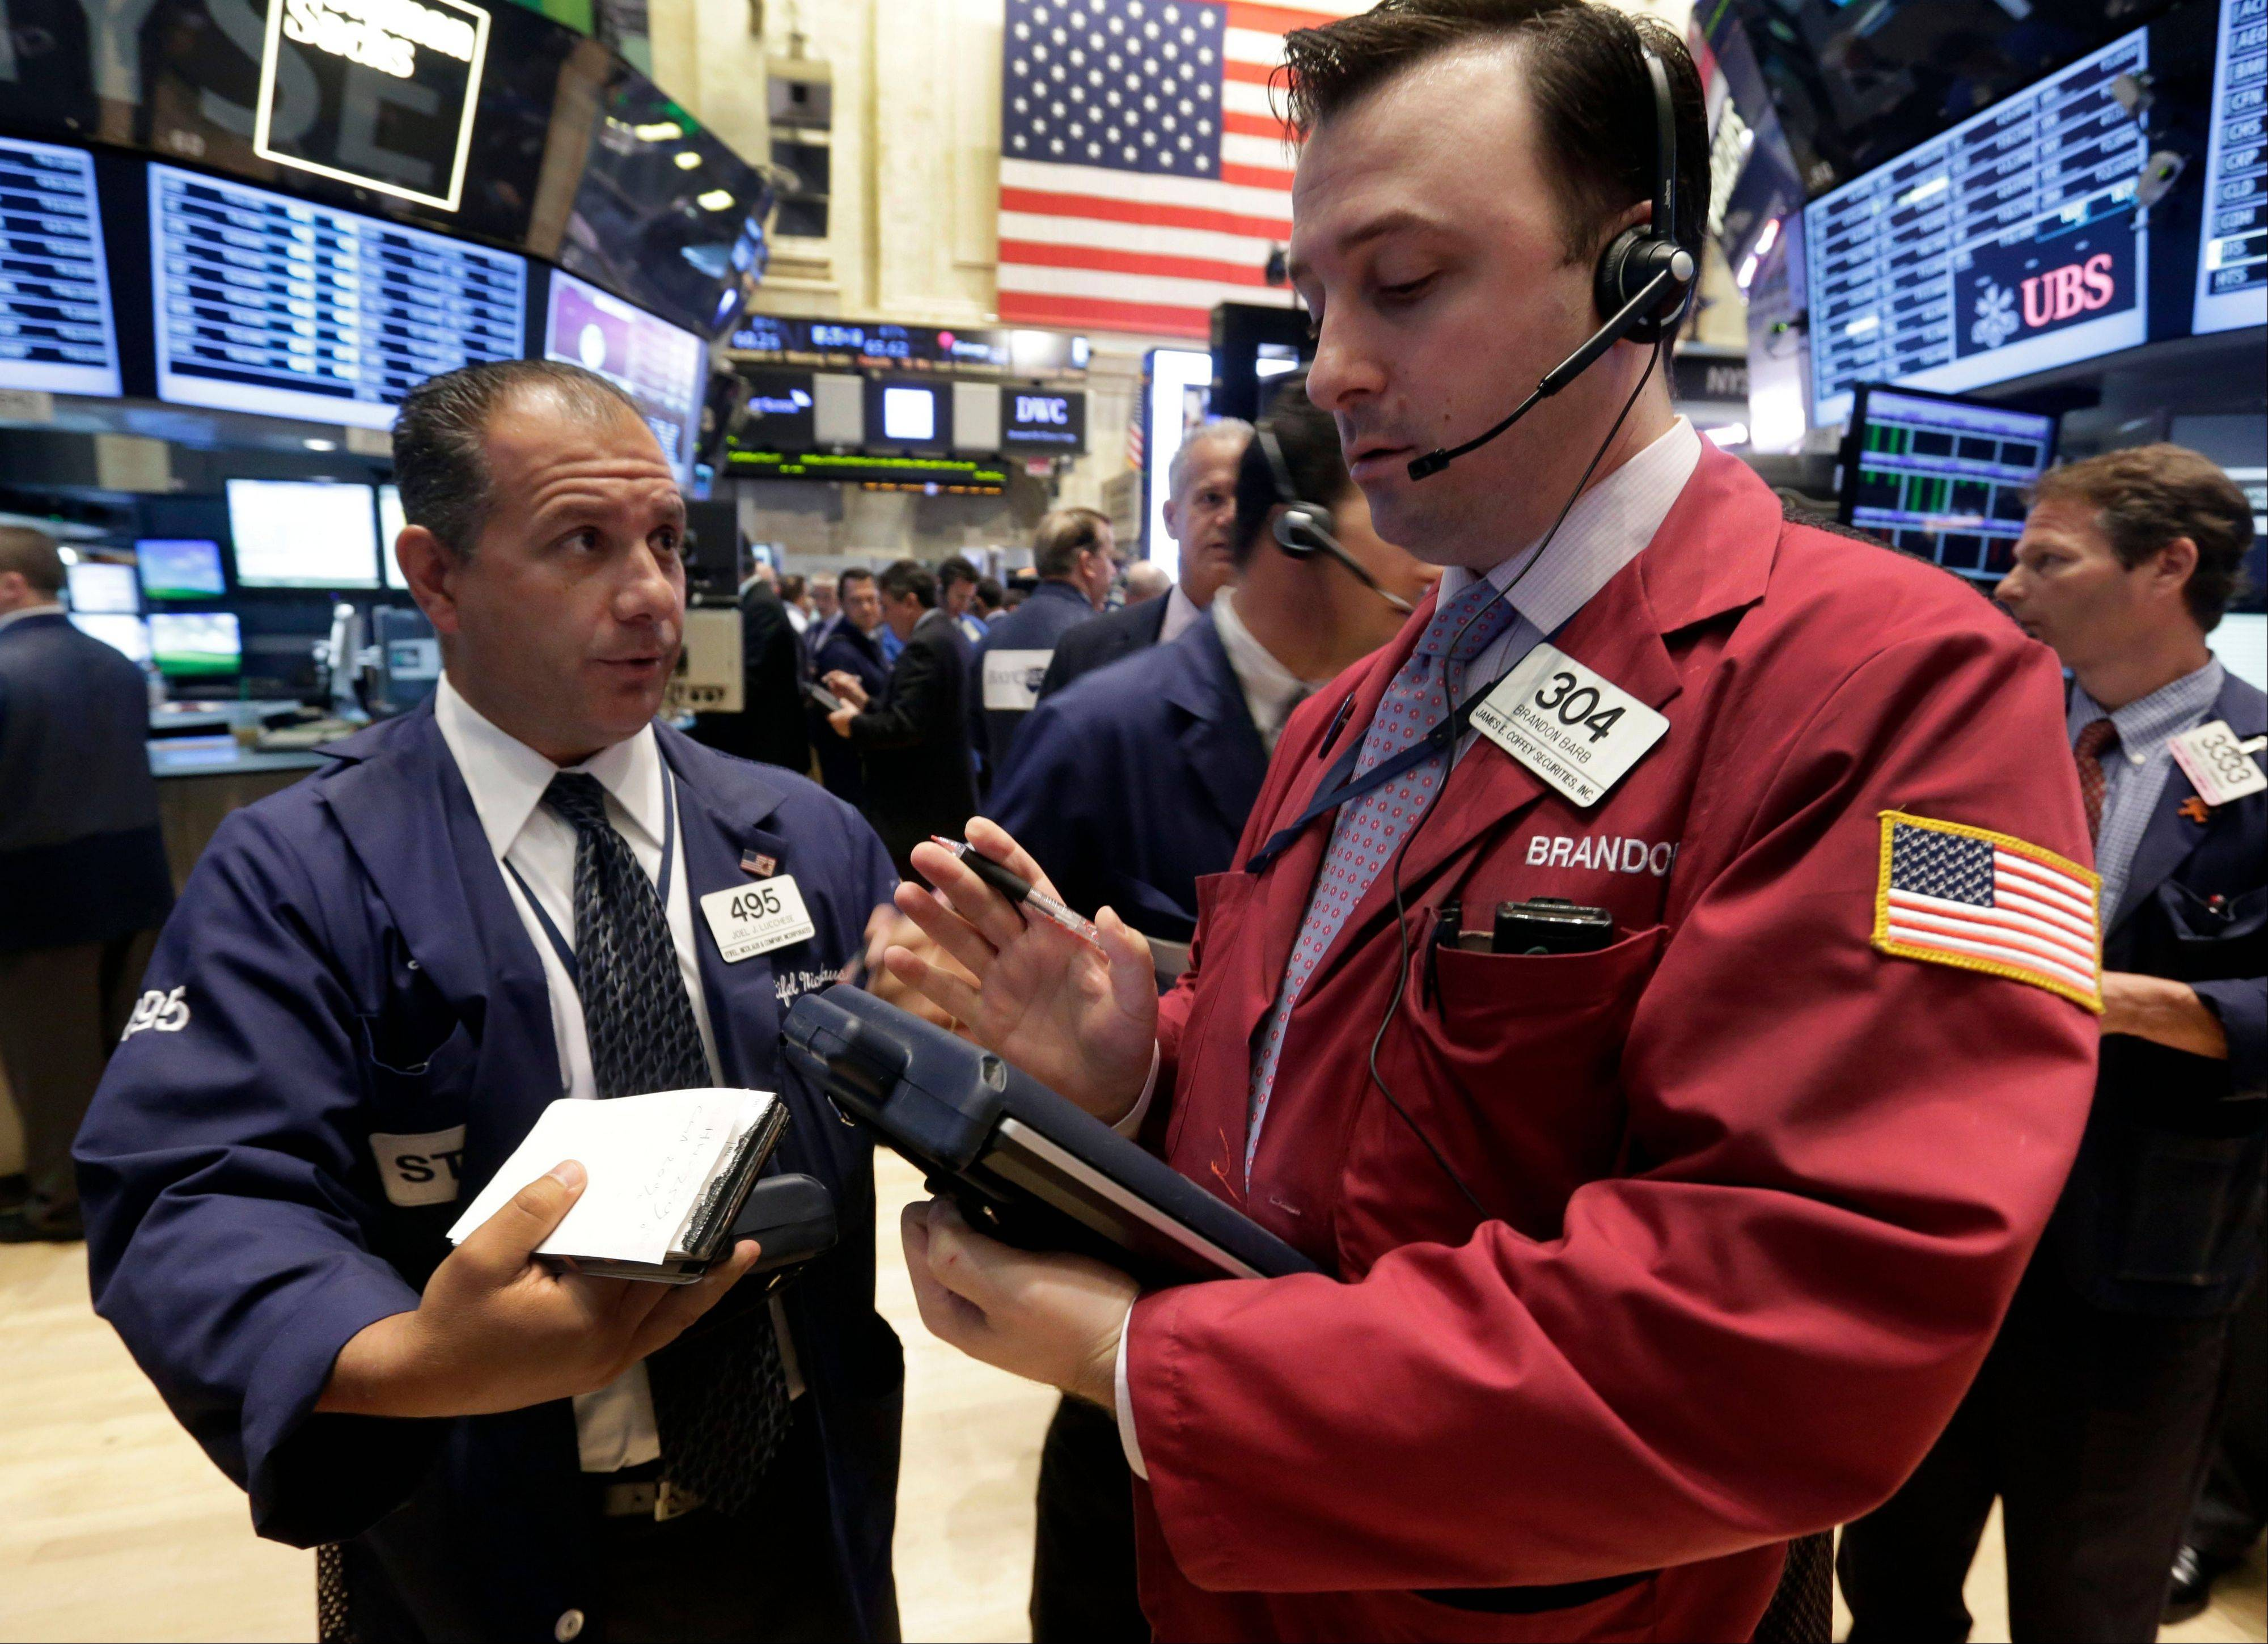 U.S. stocks gained, ending a three-day decline in the Standard & Poor's 500 Index, amid better- than-forecast economic data and acquisitions in the media and grocery industries.